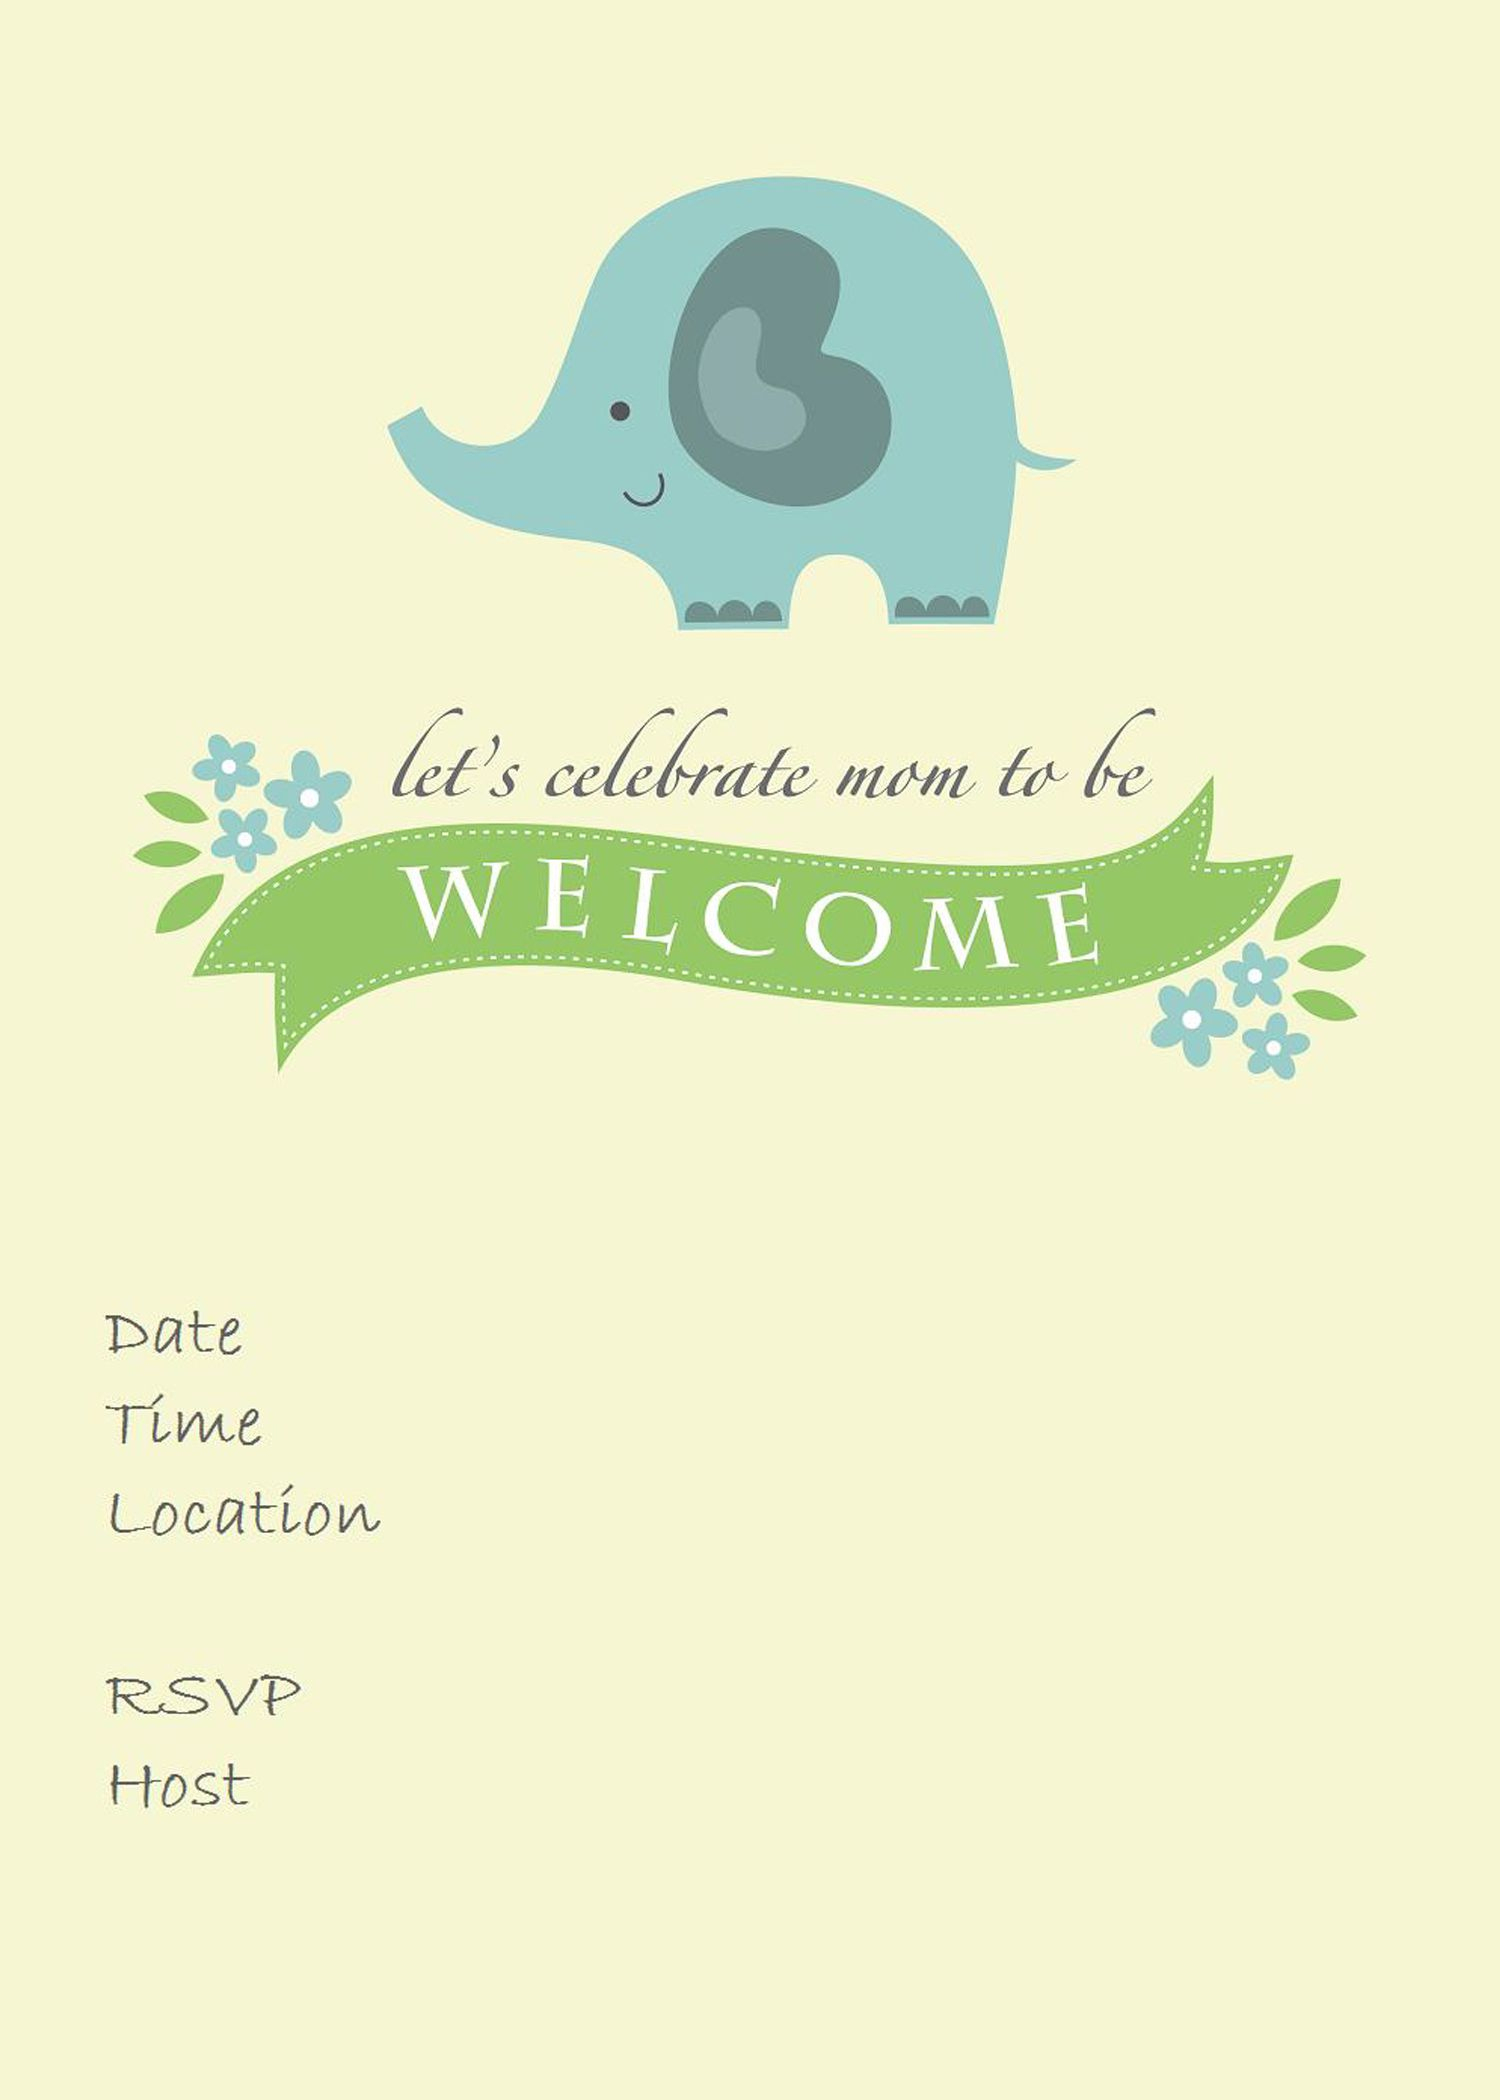 25 Adorable Free Printable Baby Shower Invitations - Free Printable Elephant Baby Shower Invitations